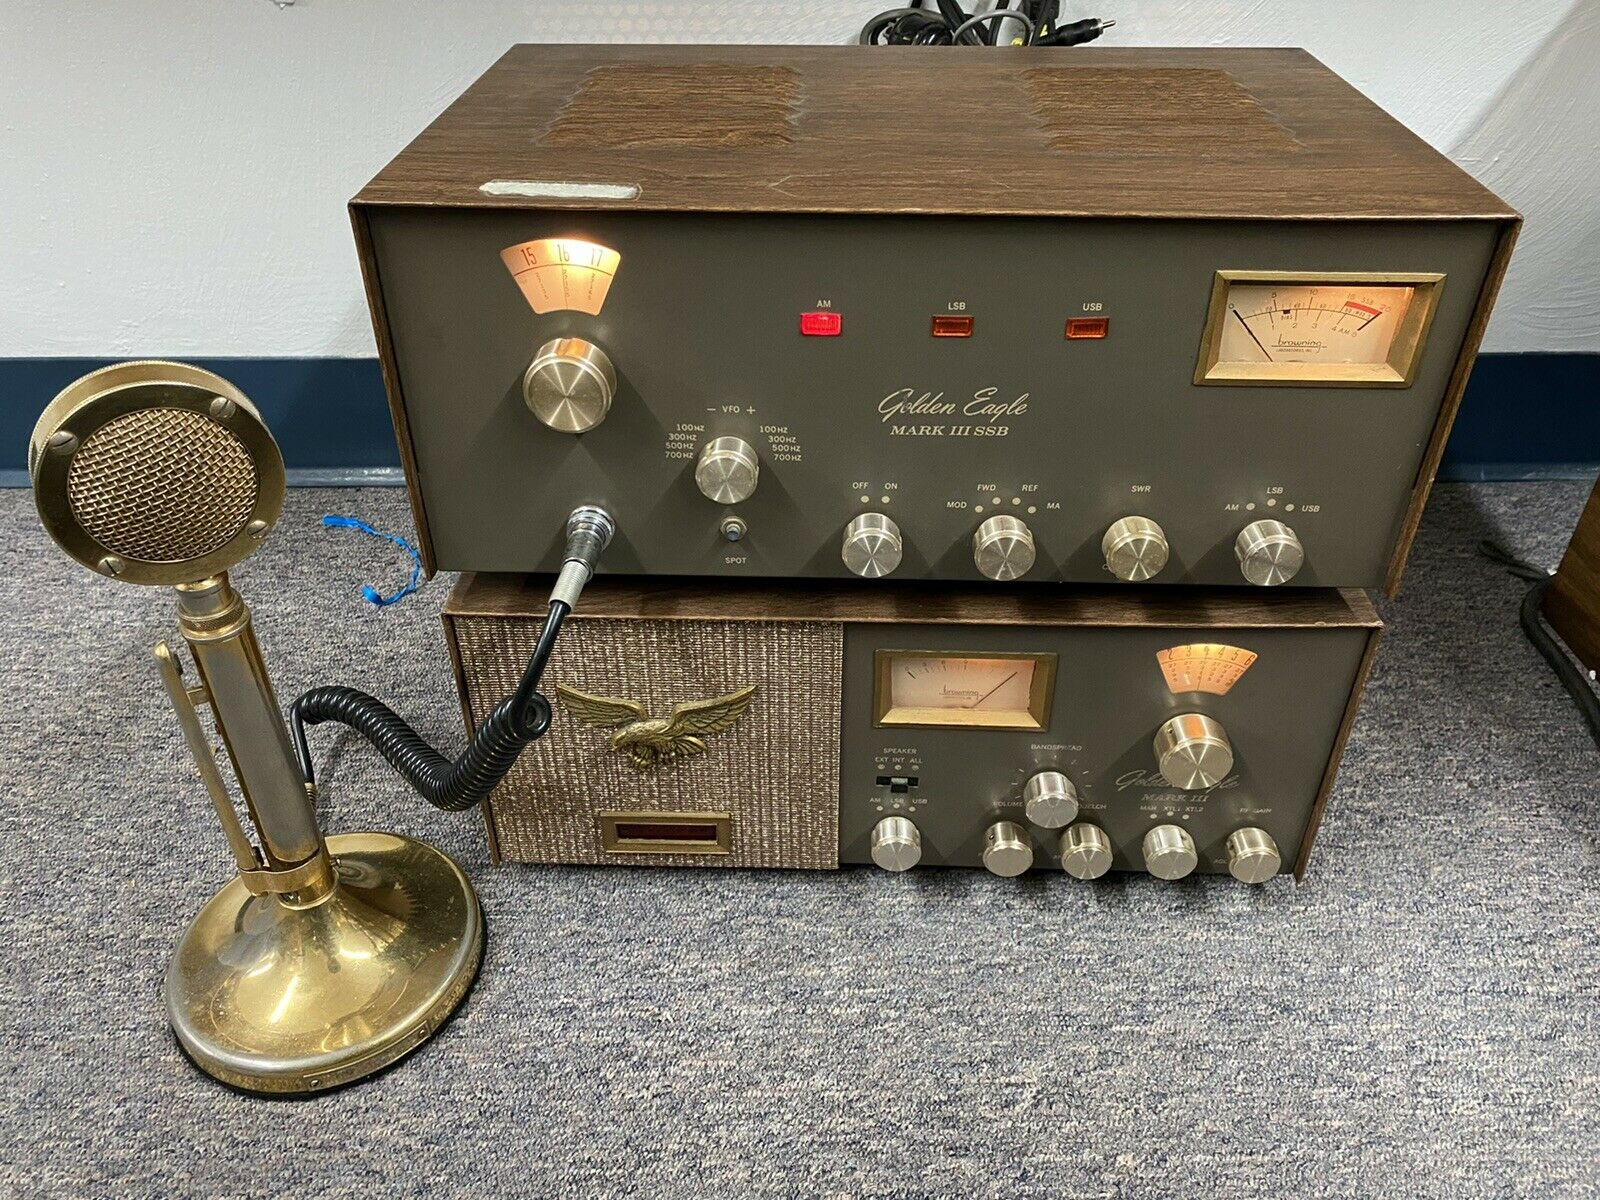 Browning Golden Eagle Mark III CB AM/SSB Pair With Original Microphone - Tested. Buy it now for 975.00